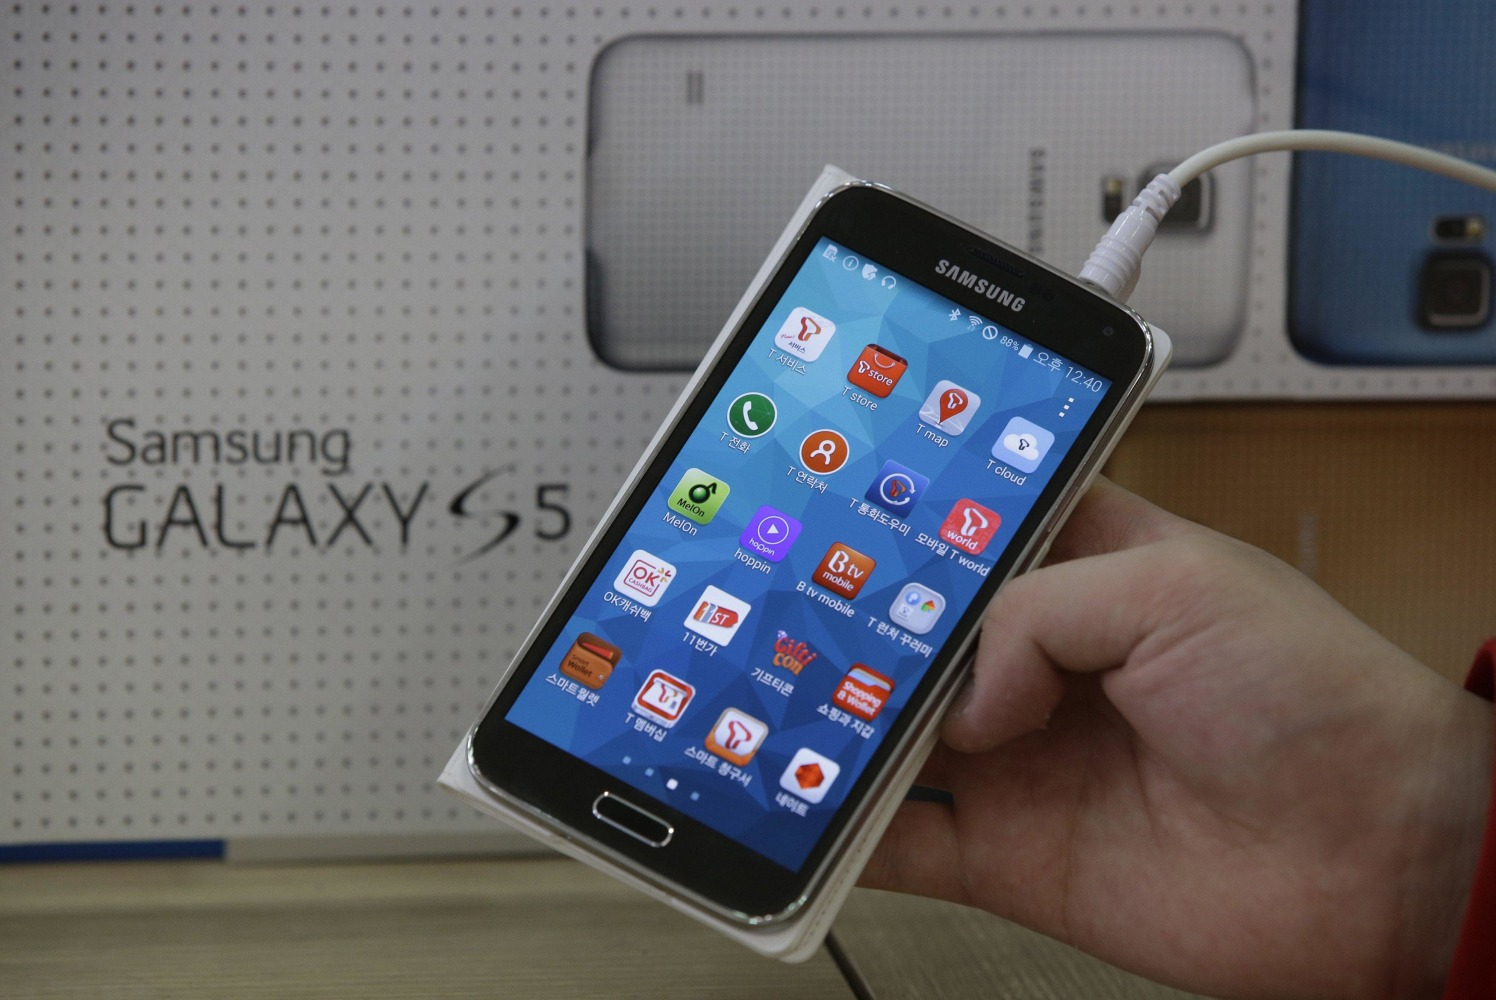 Samsung Adds Anti-Theft Features to Galaxy S5 Smartphones ...